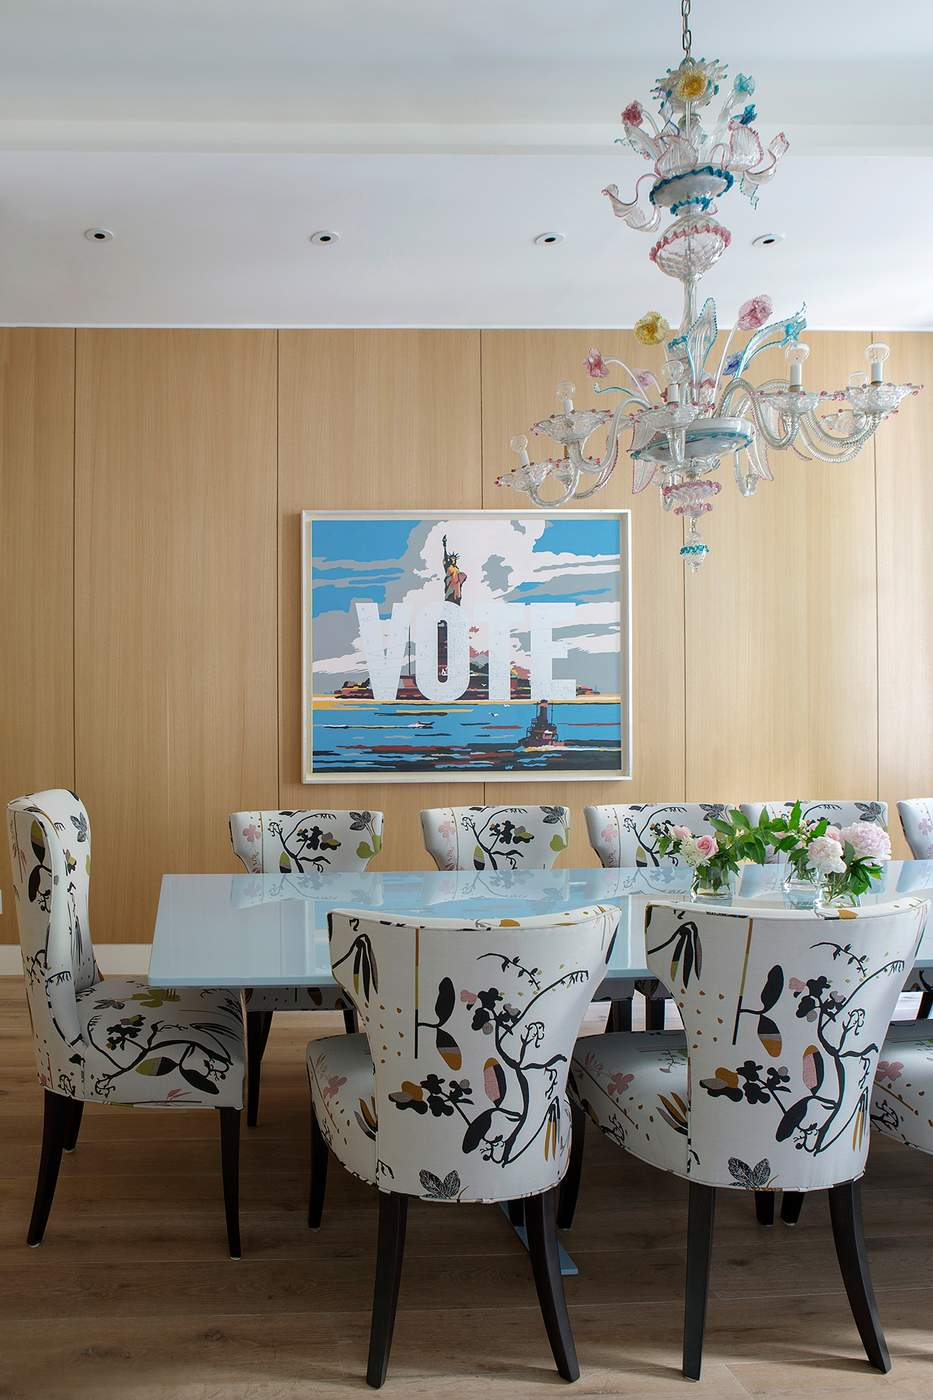 Dining Room Chairs Decked In An Abstract Floral Print Lend A Whimsical Vibe To This Designed By The Novogratz Photography Costas Picadas